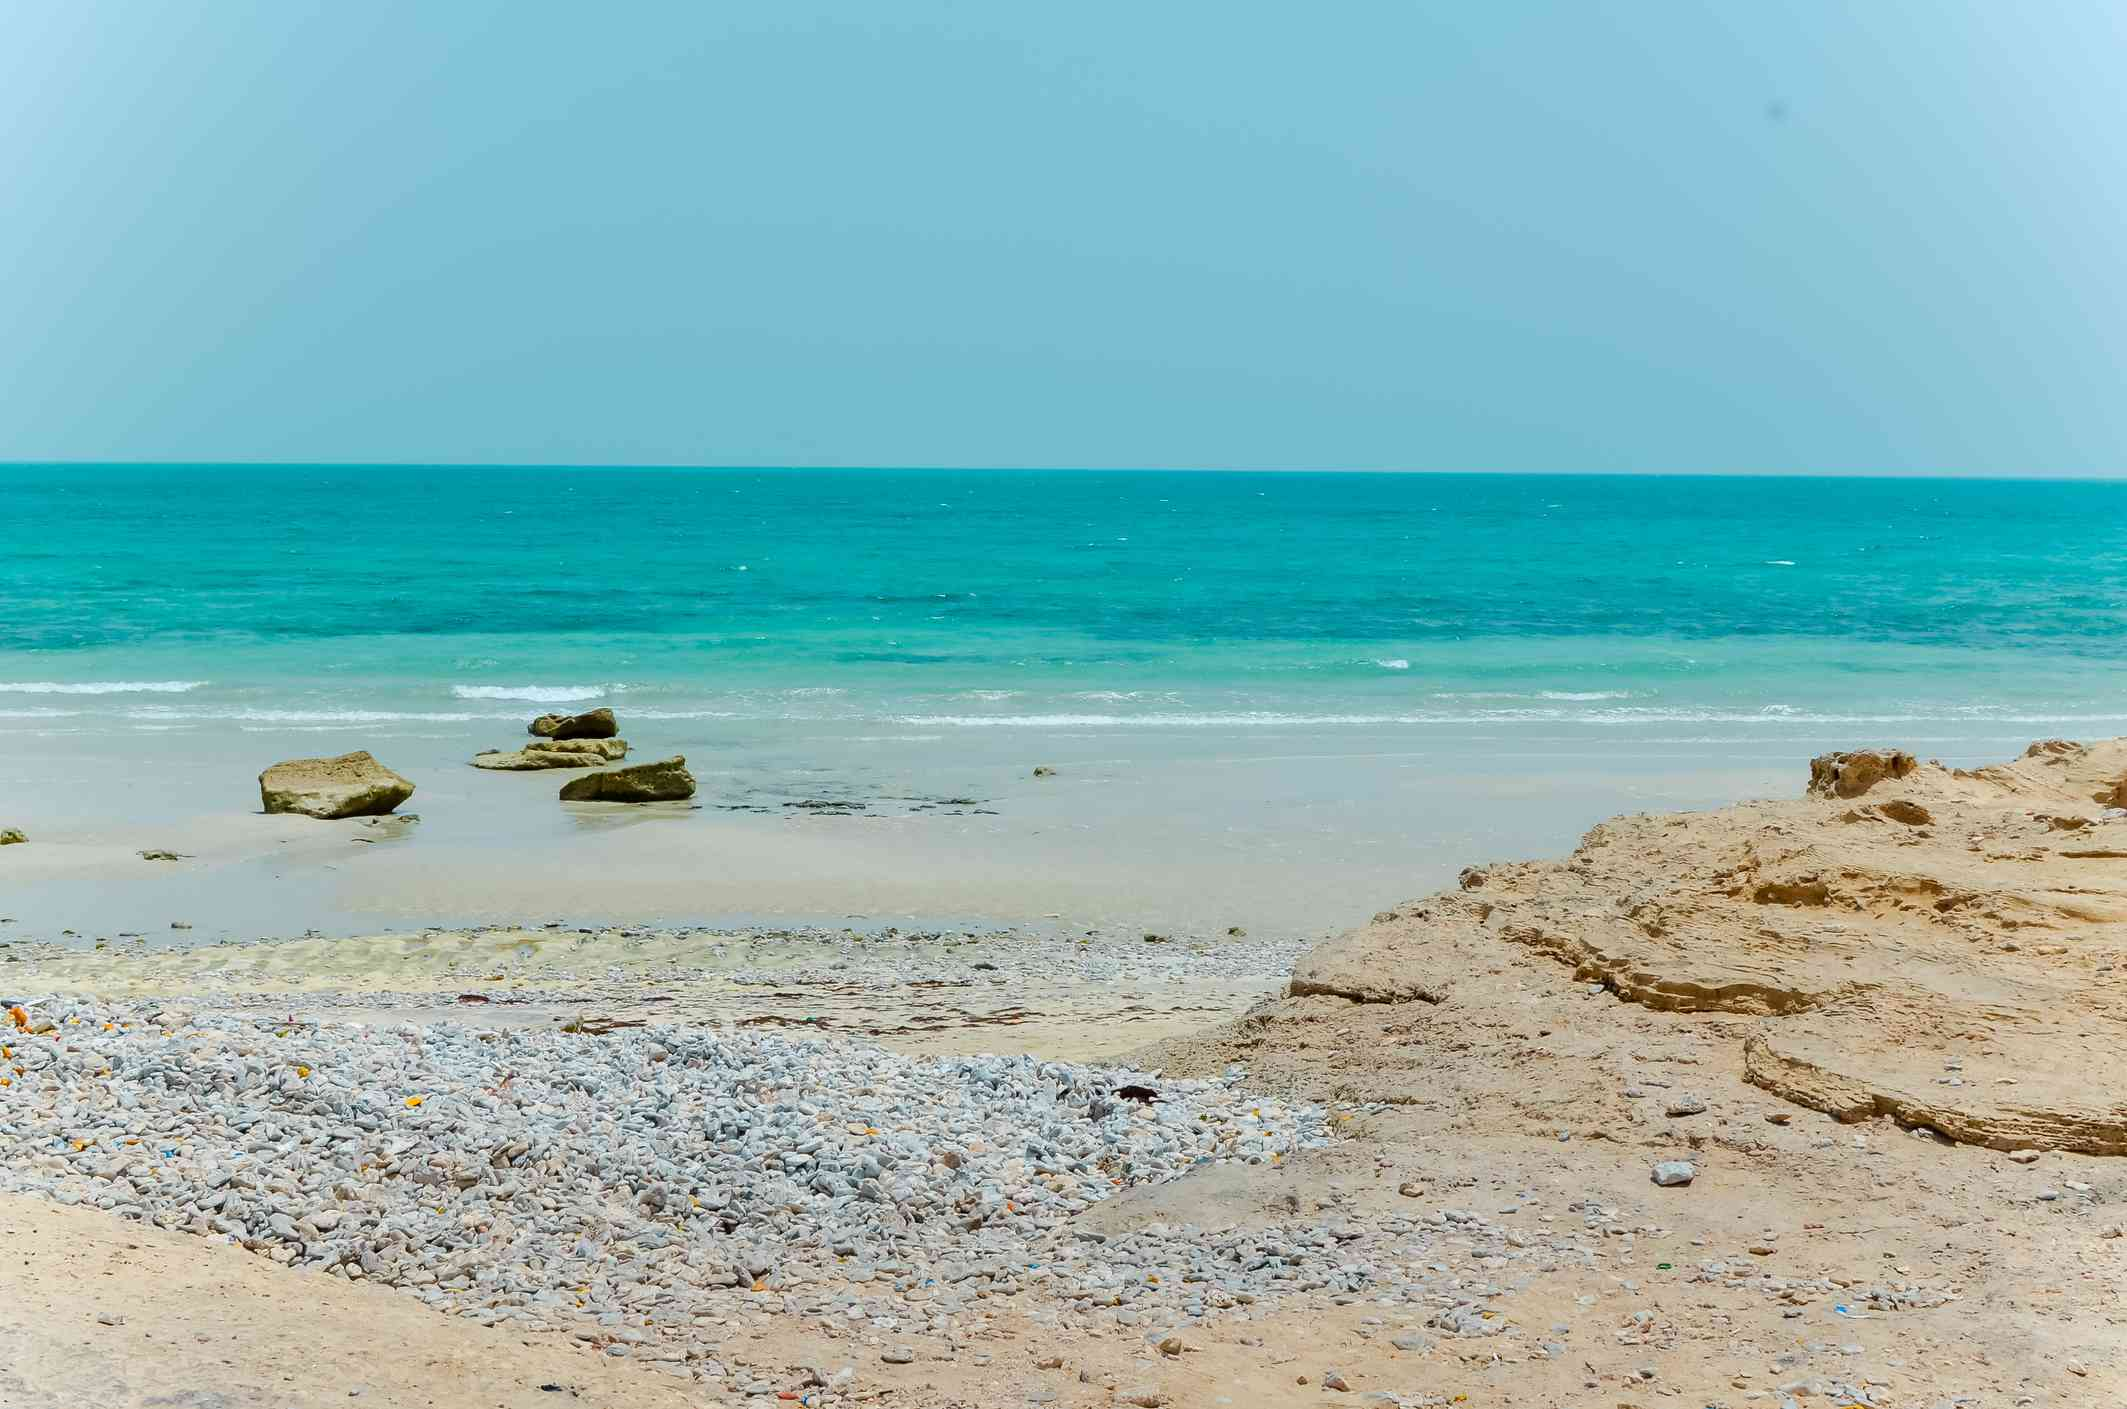 Qatar Fuwairit beach with some rock formations emerging from the sand